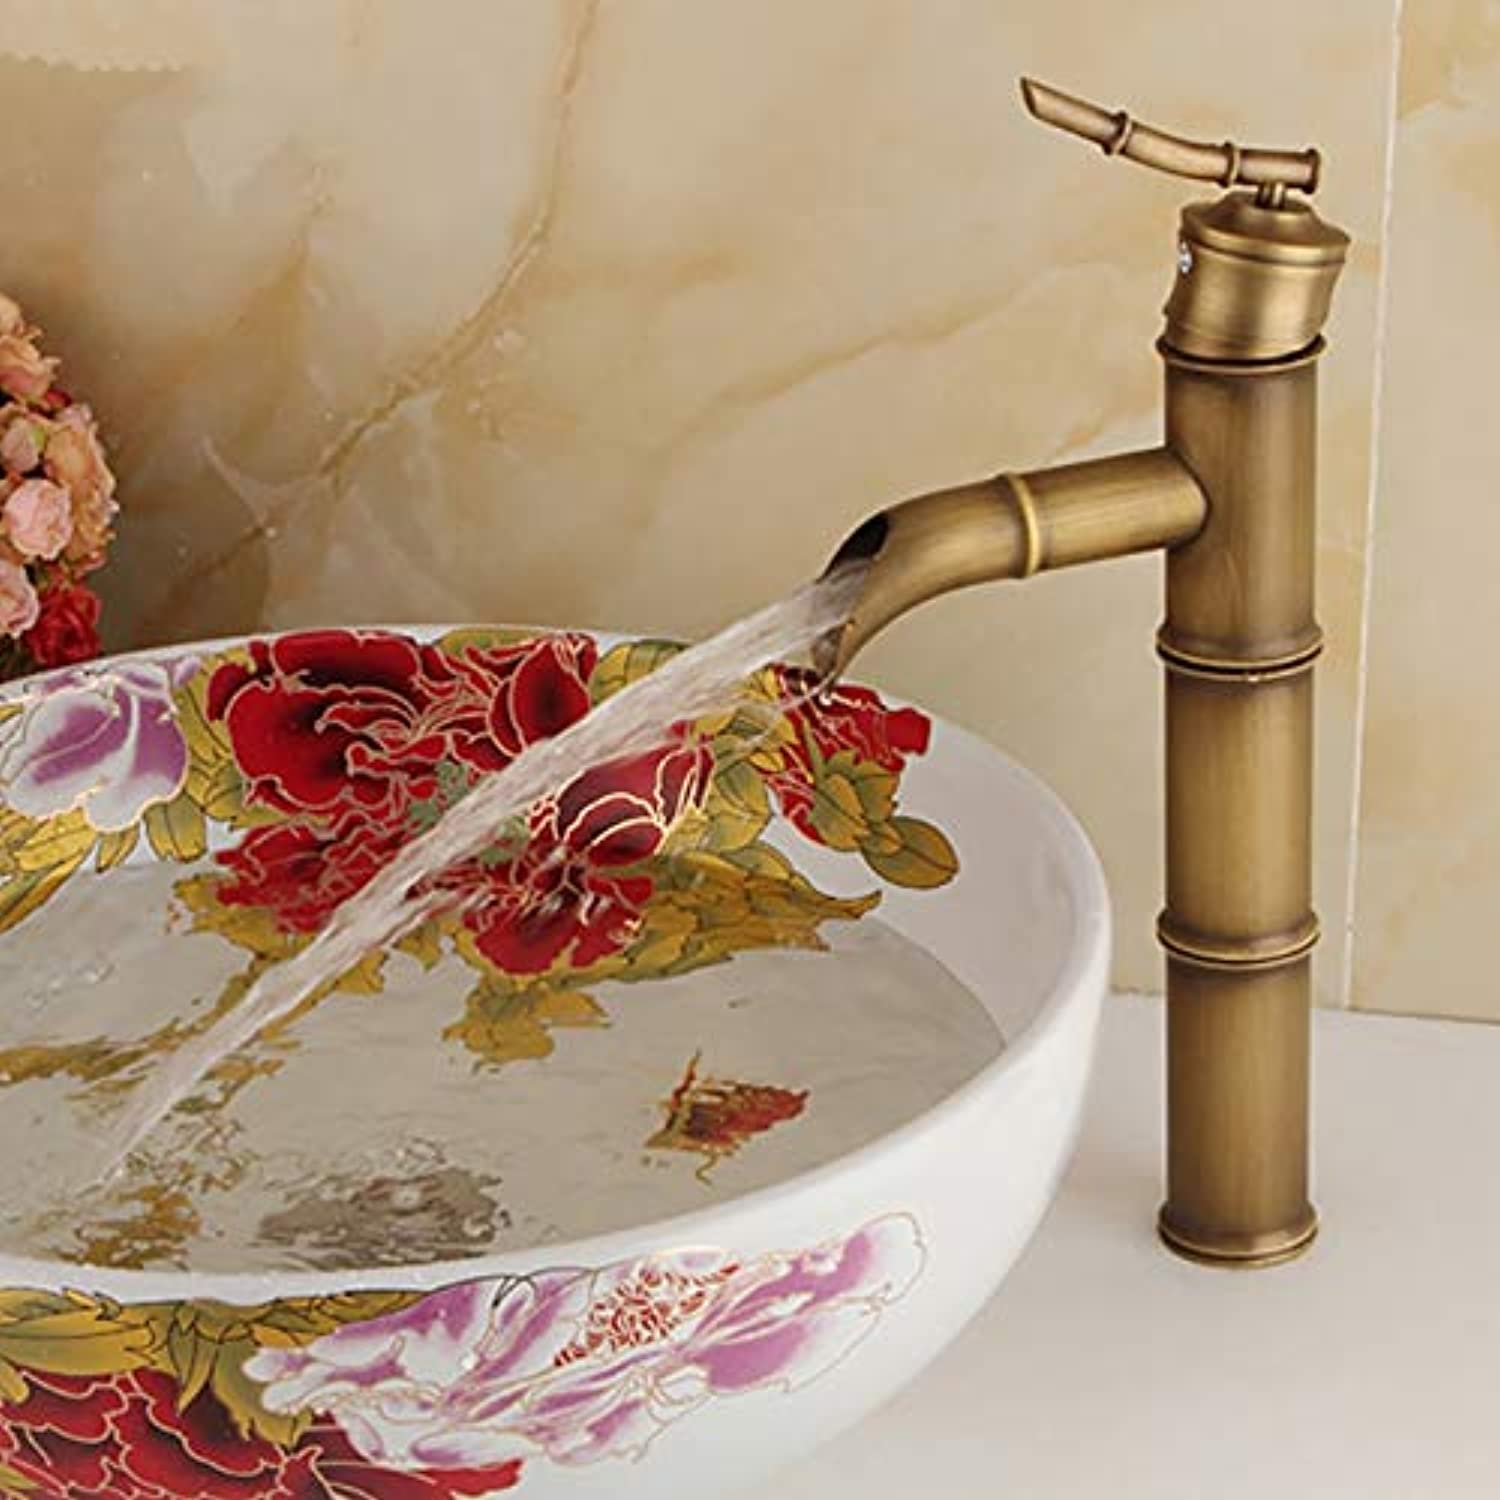 Decorry Antique Bamboo Tall Bathroom Faucet Single Handle Bamboo Water Tap Antique Bronze Finish Brass Basin Sink Tall Basin Faucet